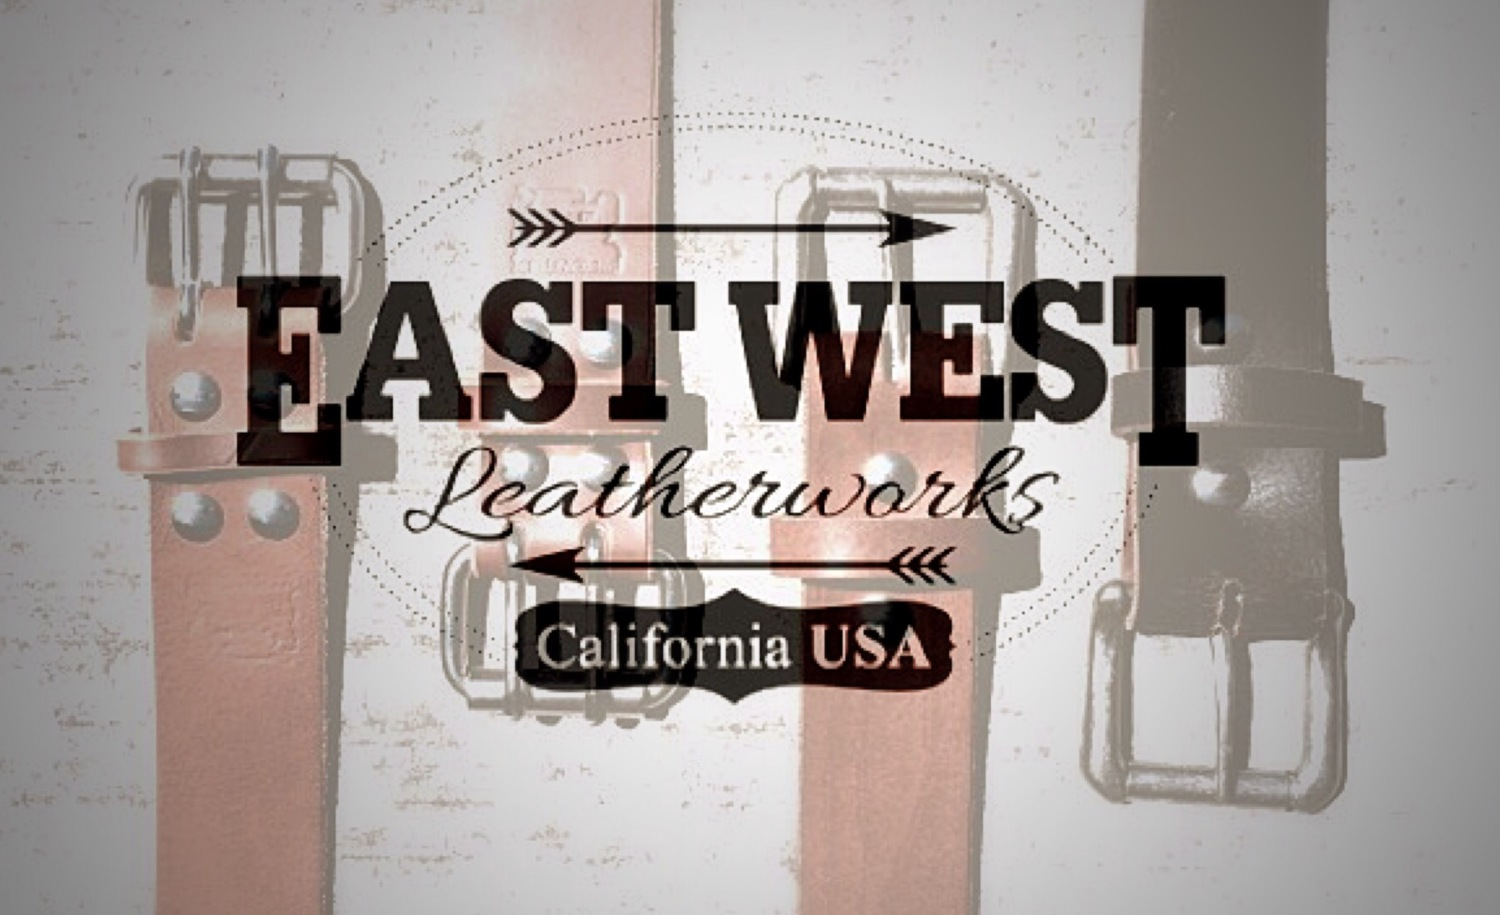 East West Leatherworks